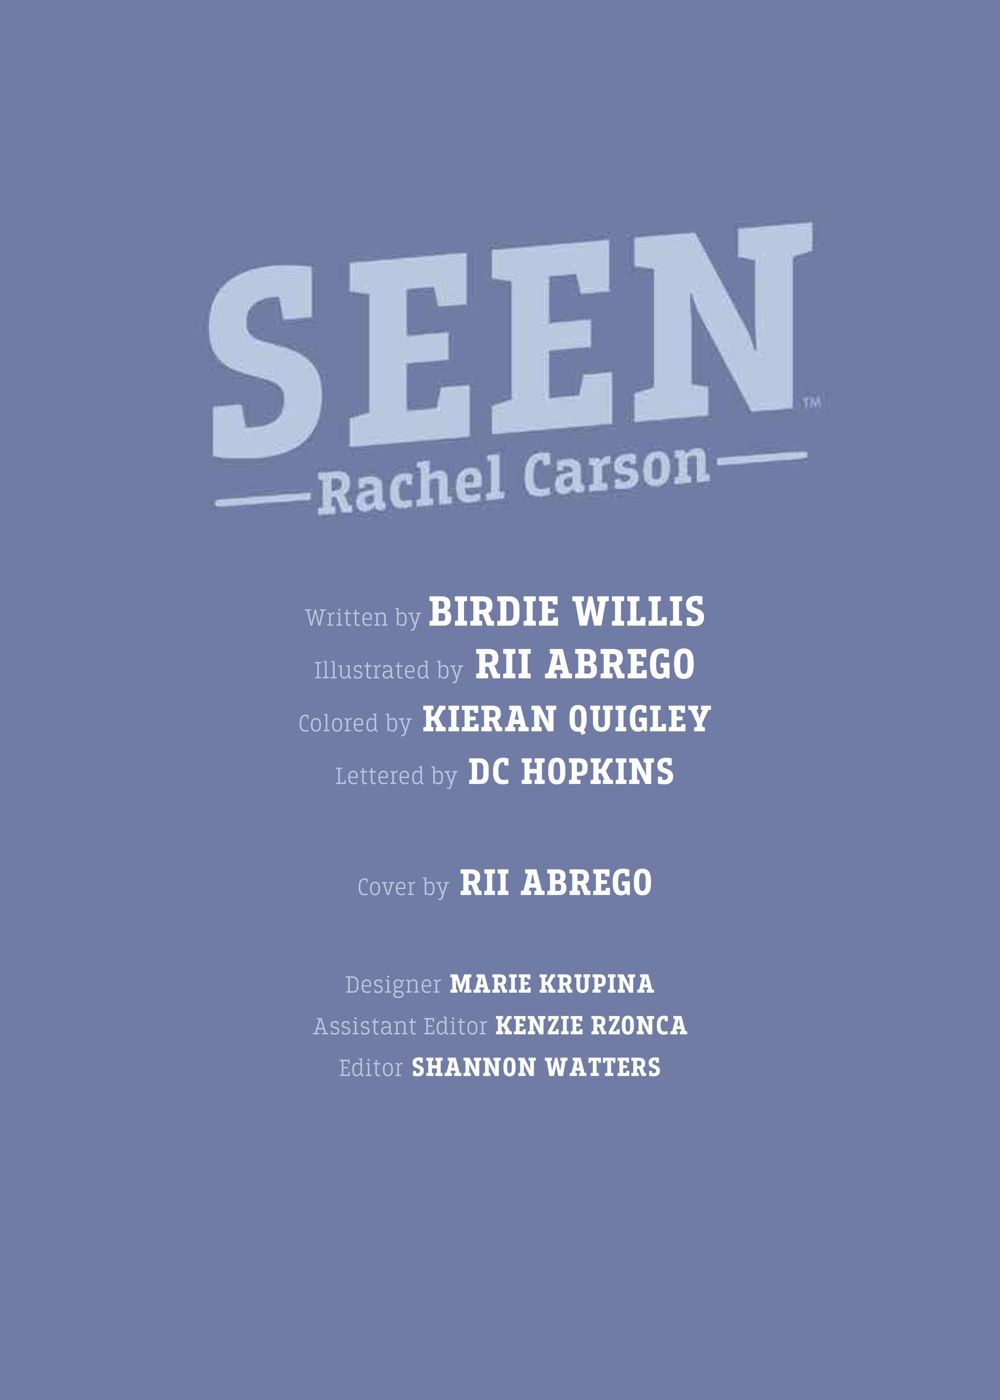 Seen_RachelCarson_OGN_SC_PRESS_7 ComicList Previews: SEEN TRUE STORIES OF MARGINALIZED TRAILBLAZERS VOLUME 2 RACHEL CARSON GN